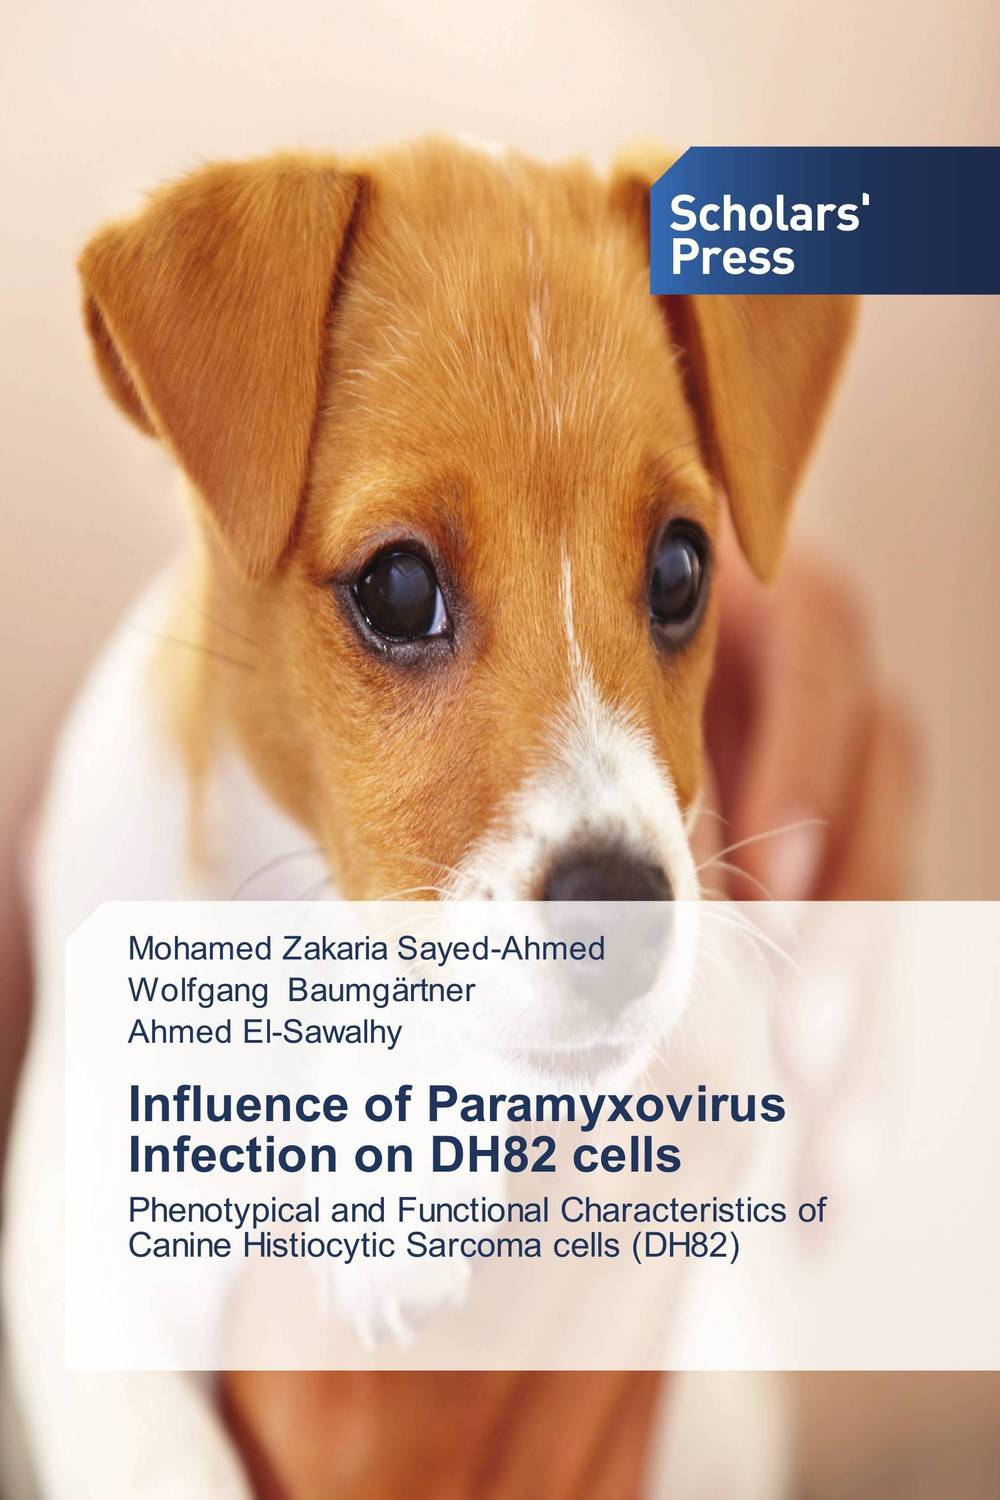 Influence of Paramyxovirus Infection on DH82 cells cdv 51am